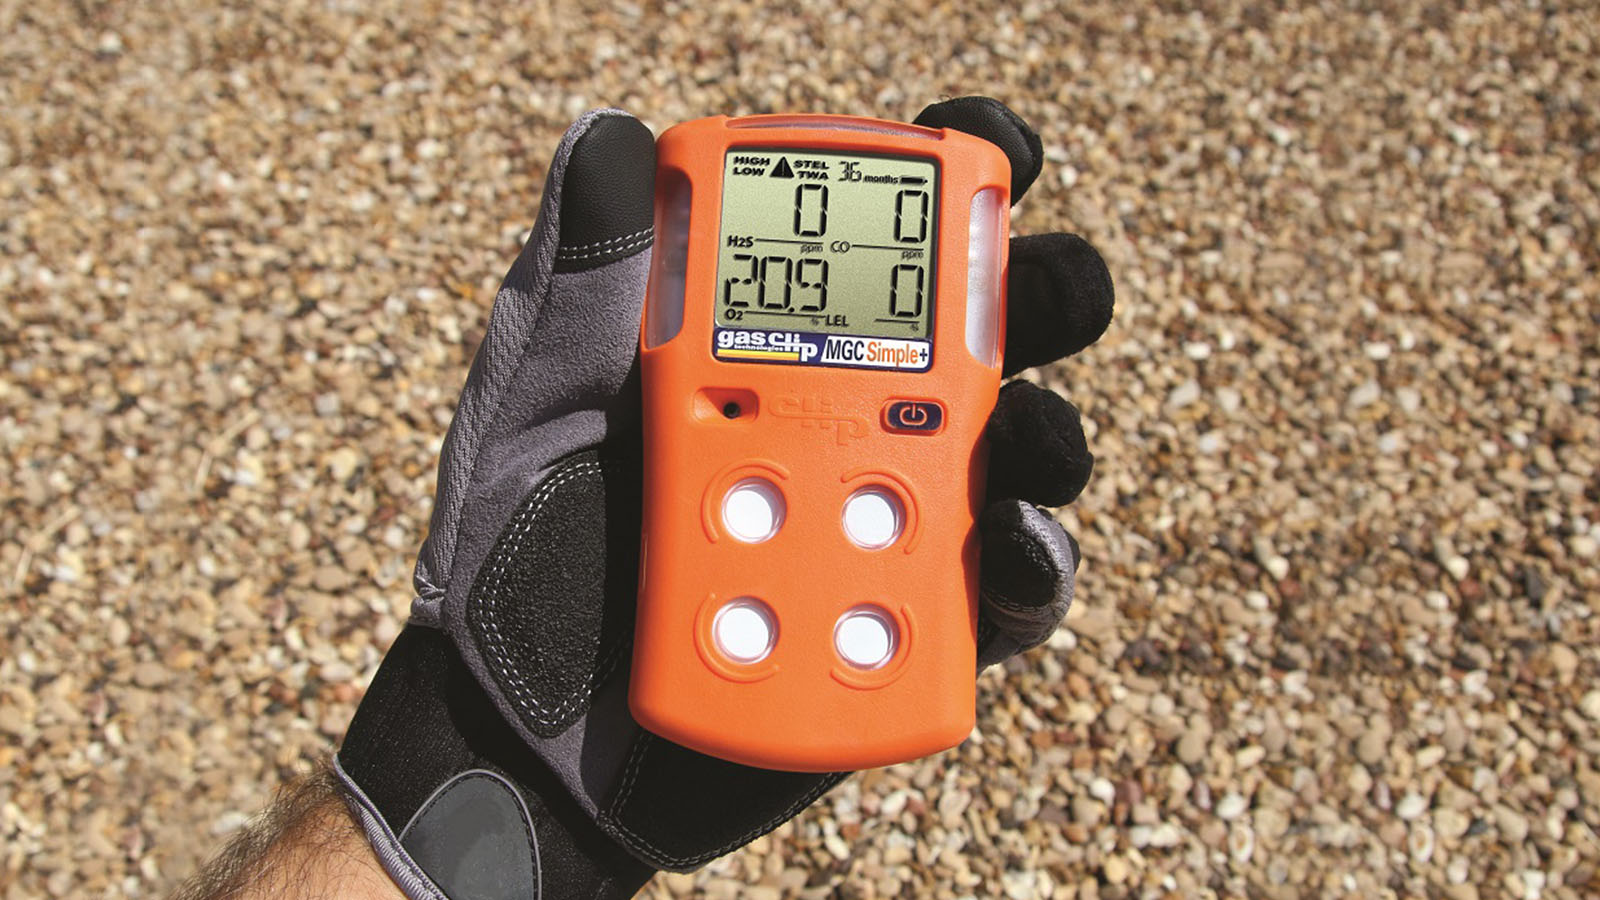 How does a gas detector work?